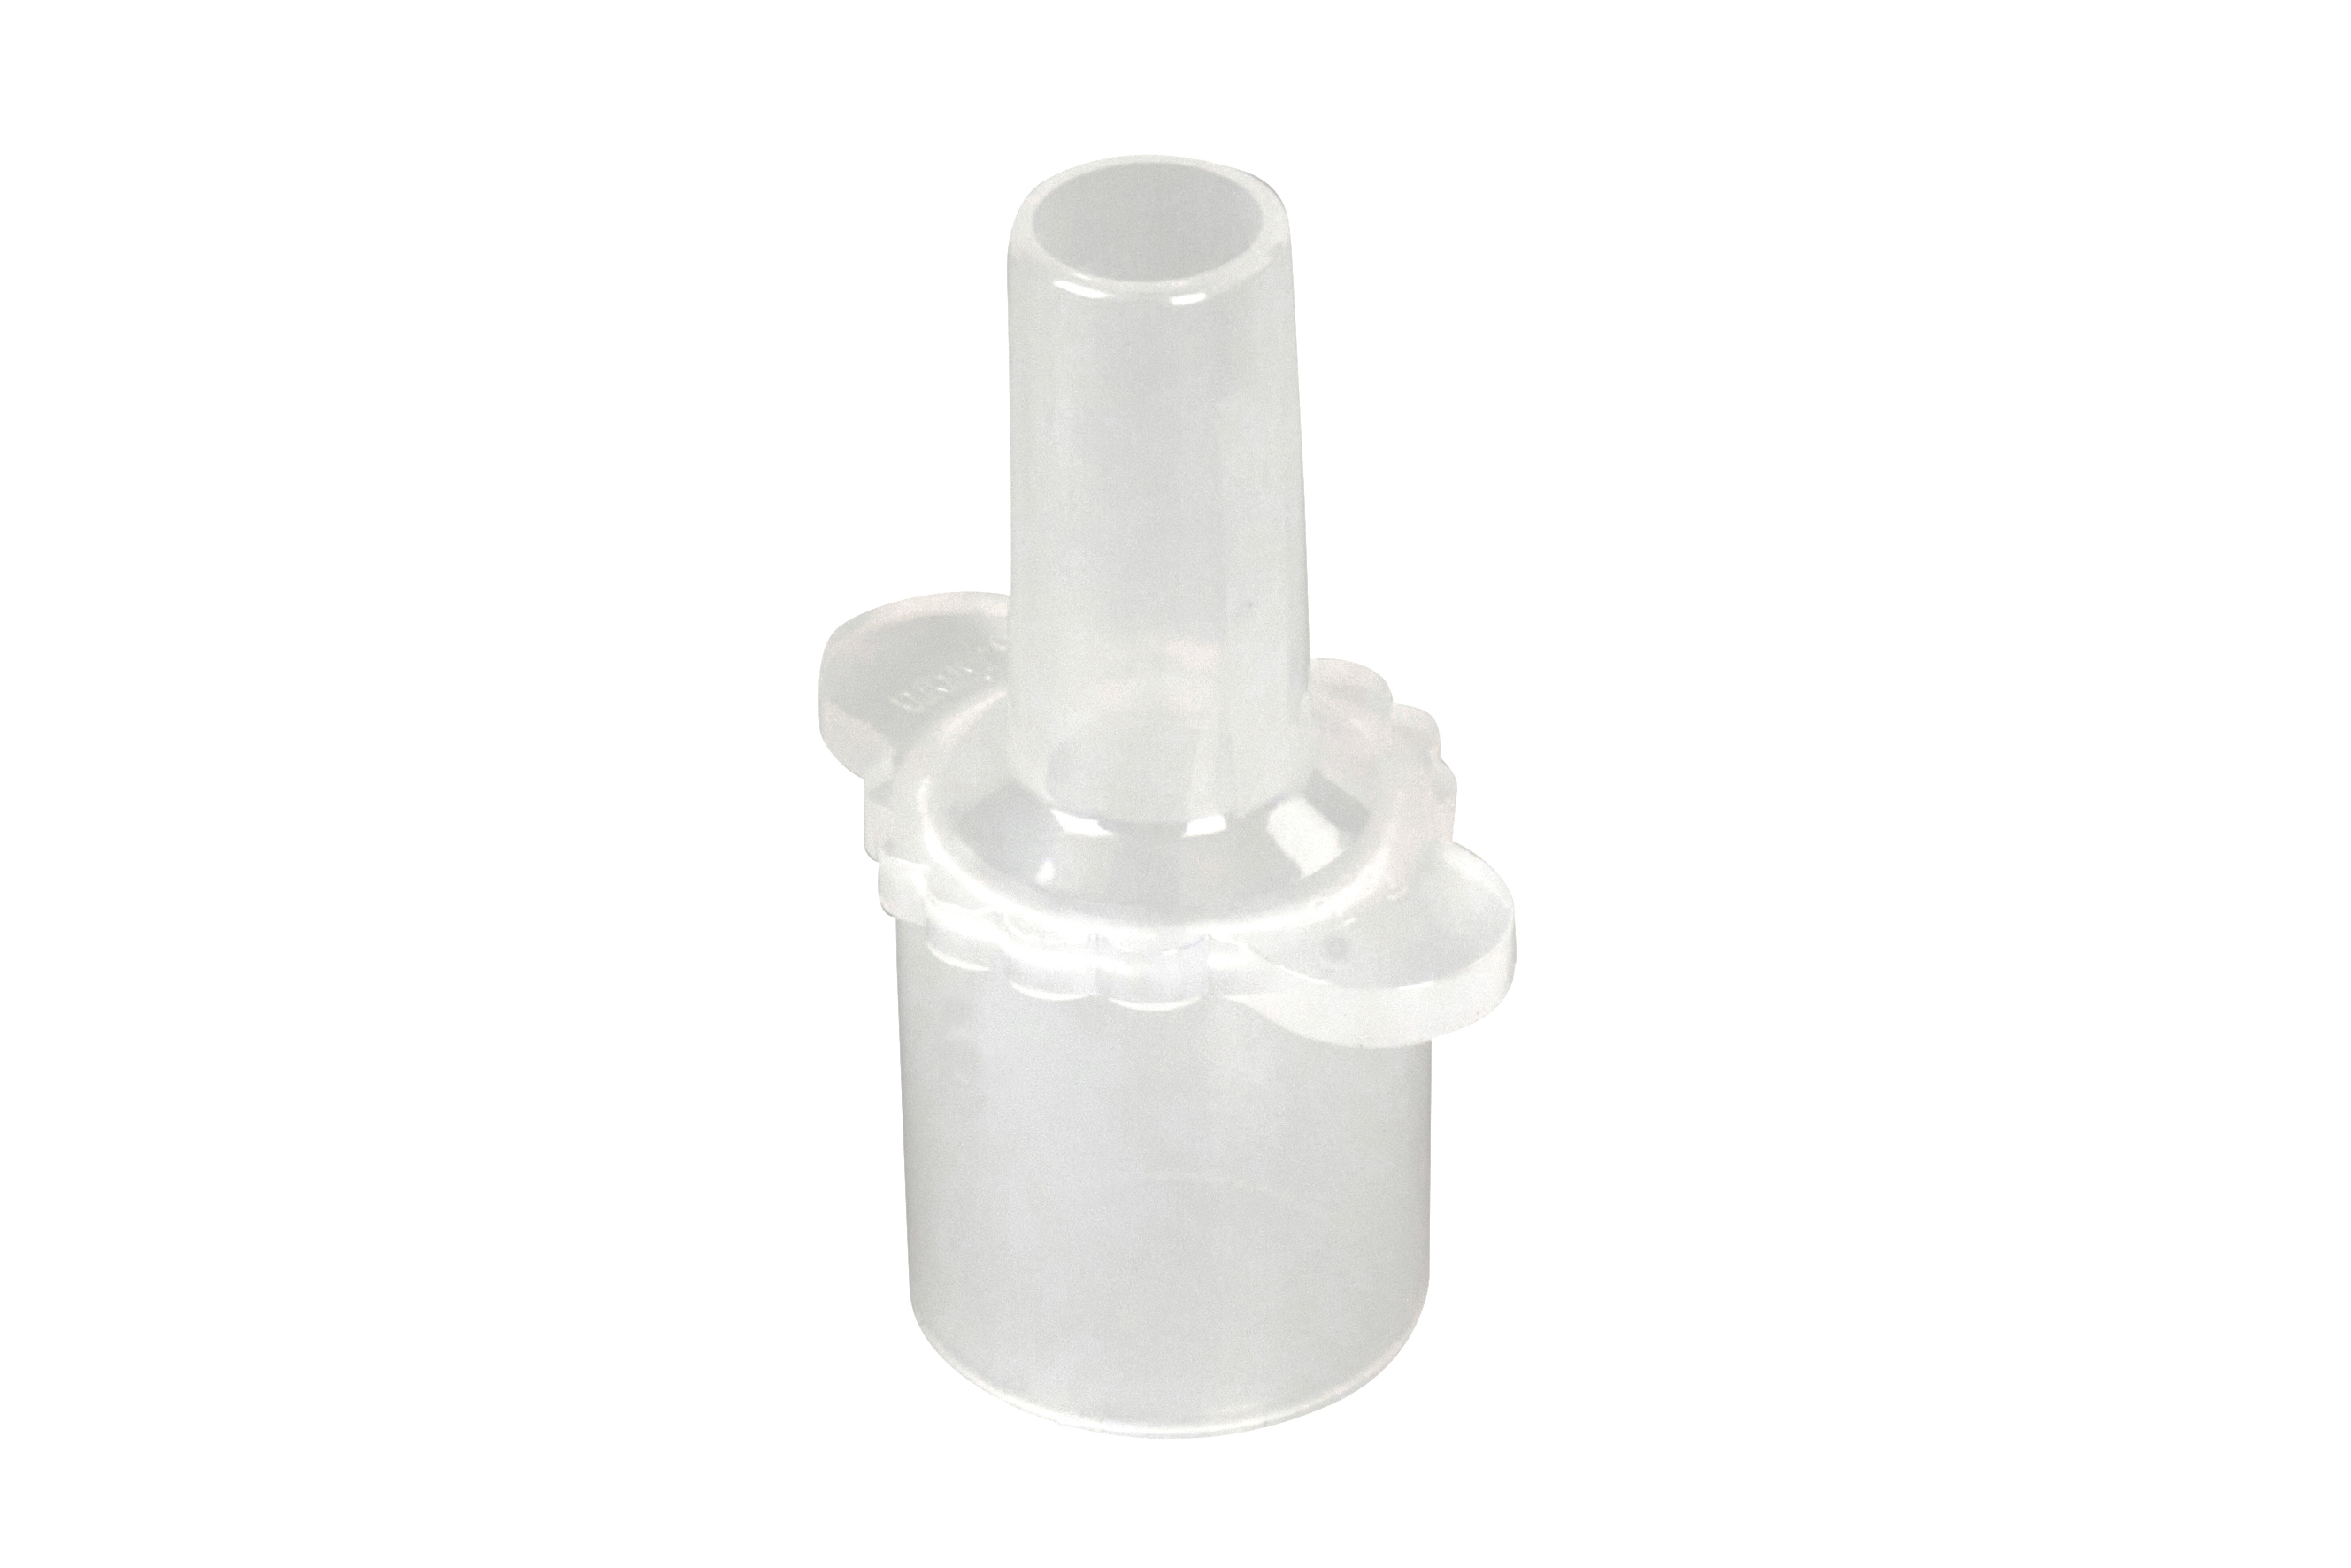 KRUUSE Connector for Endotracheal Tube 6.5 mm, 5/pk